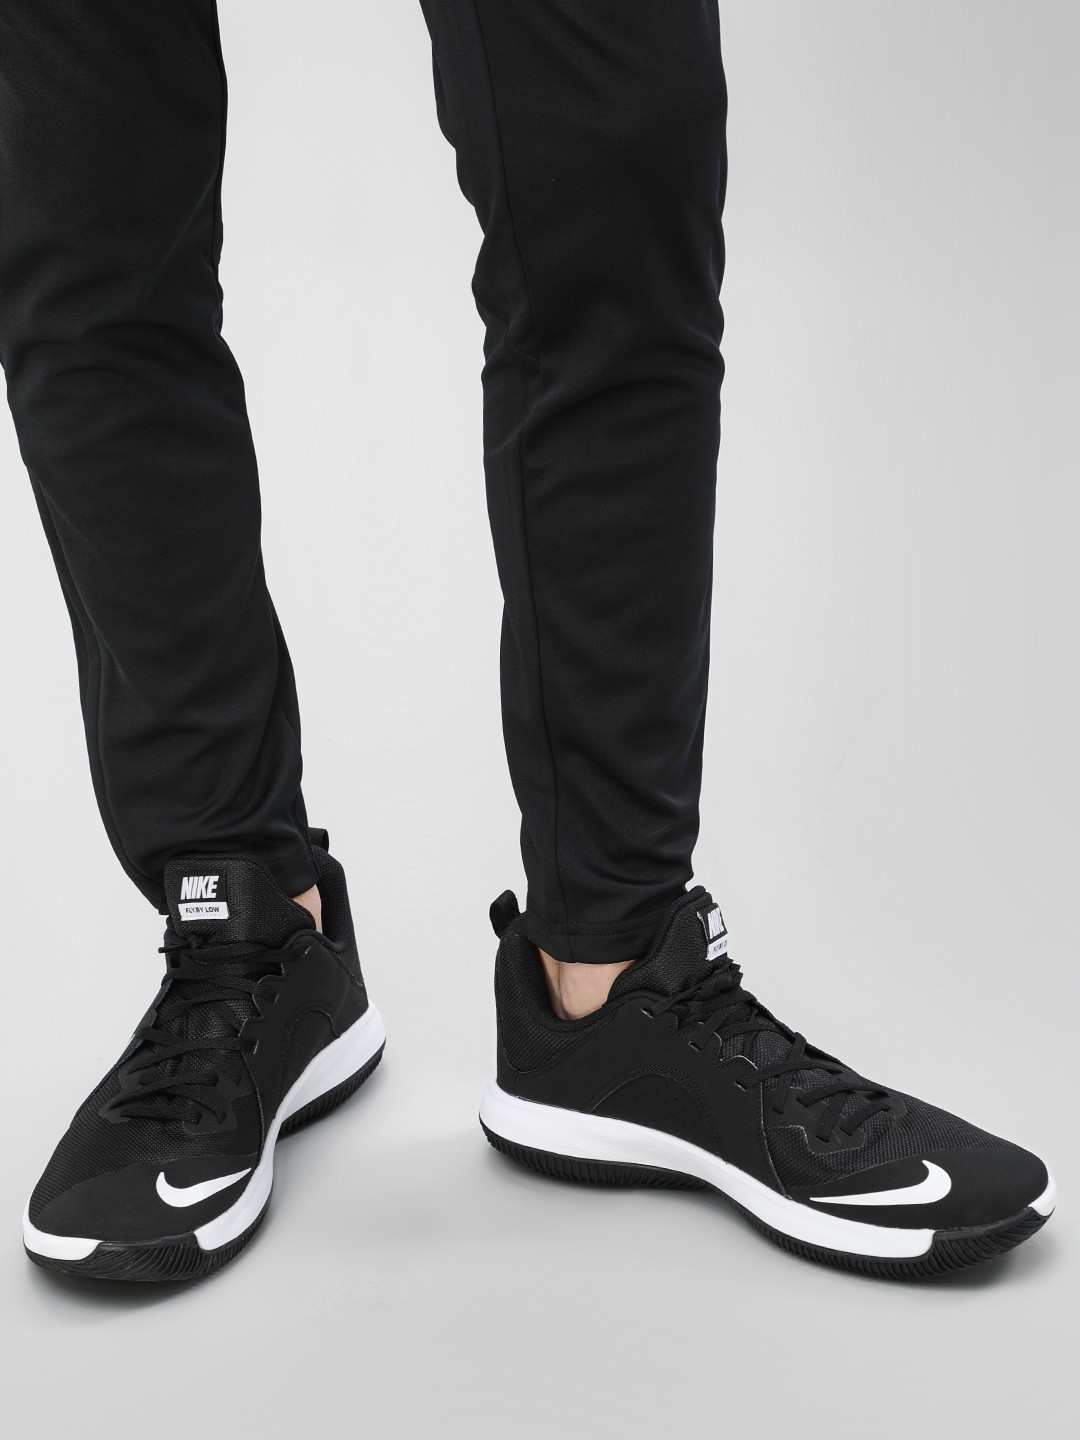 Nike Black Fly By Low Basketball Shoes 1